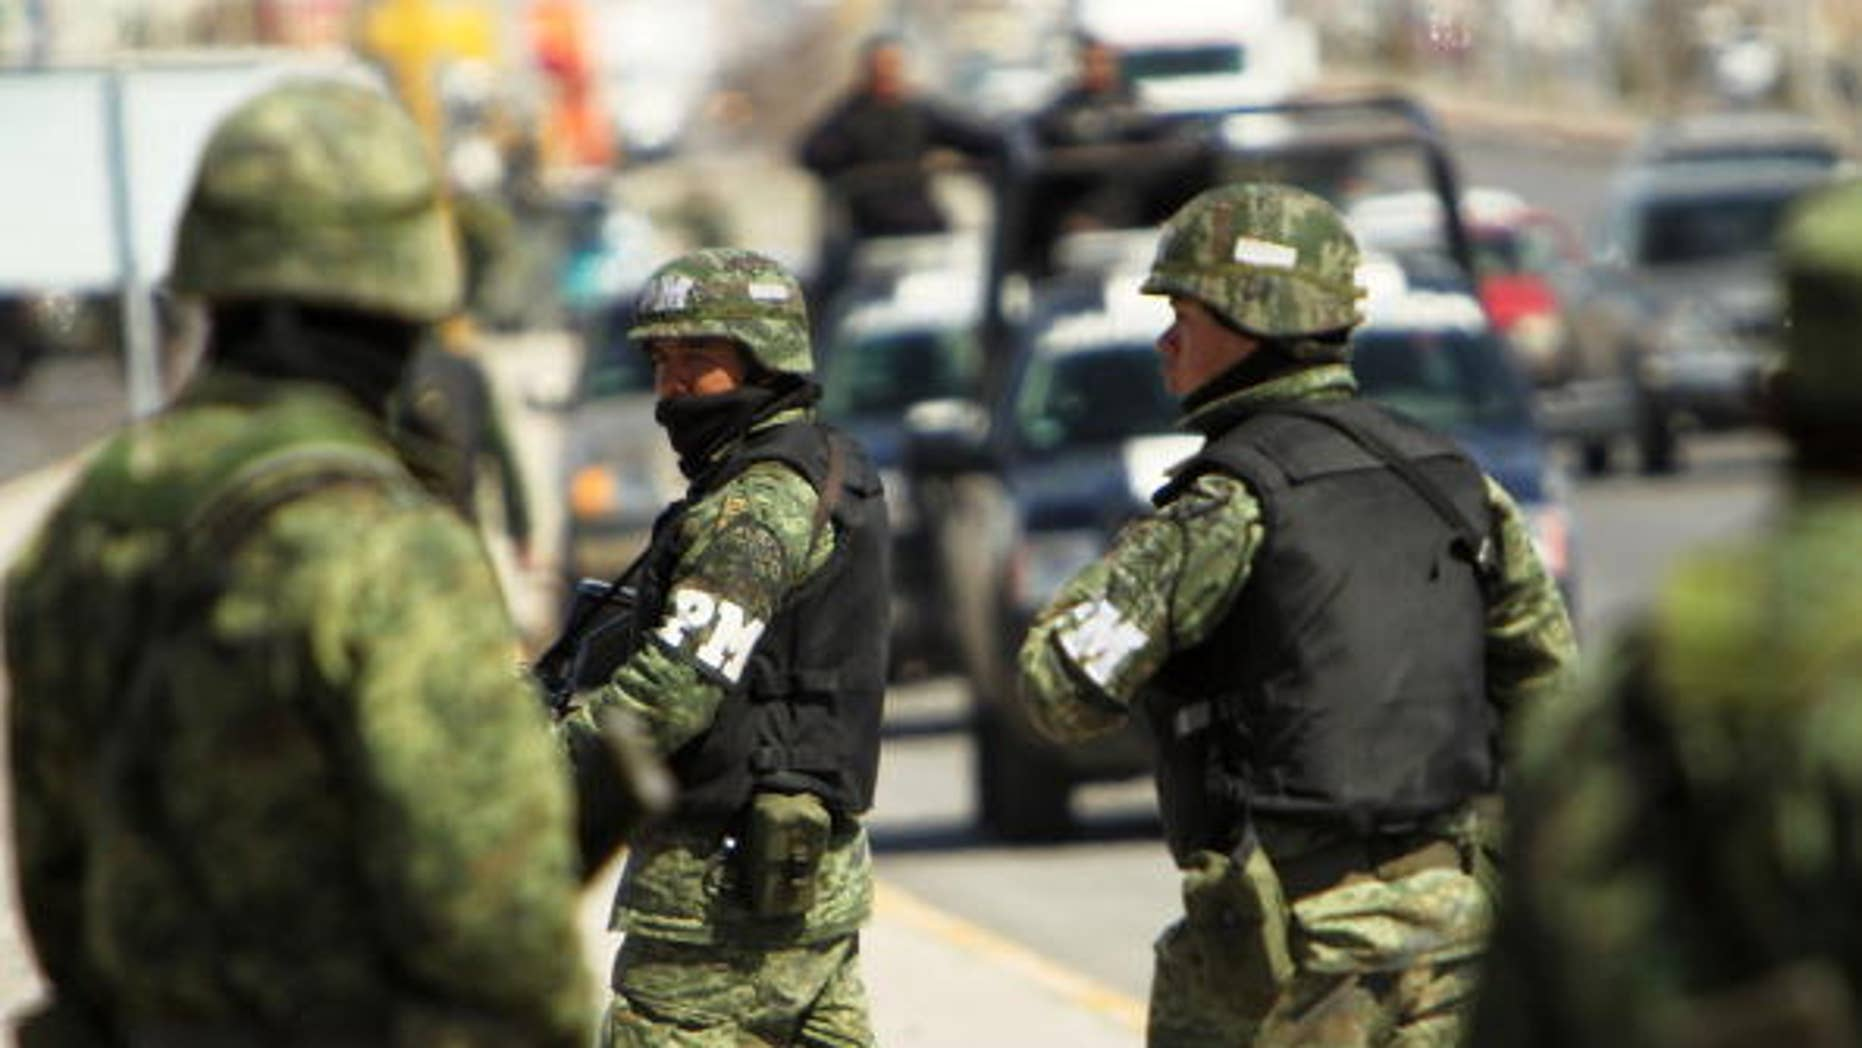 Members of the Mexican military police in Juarez, Mexico.